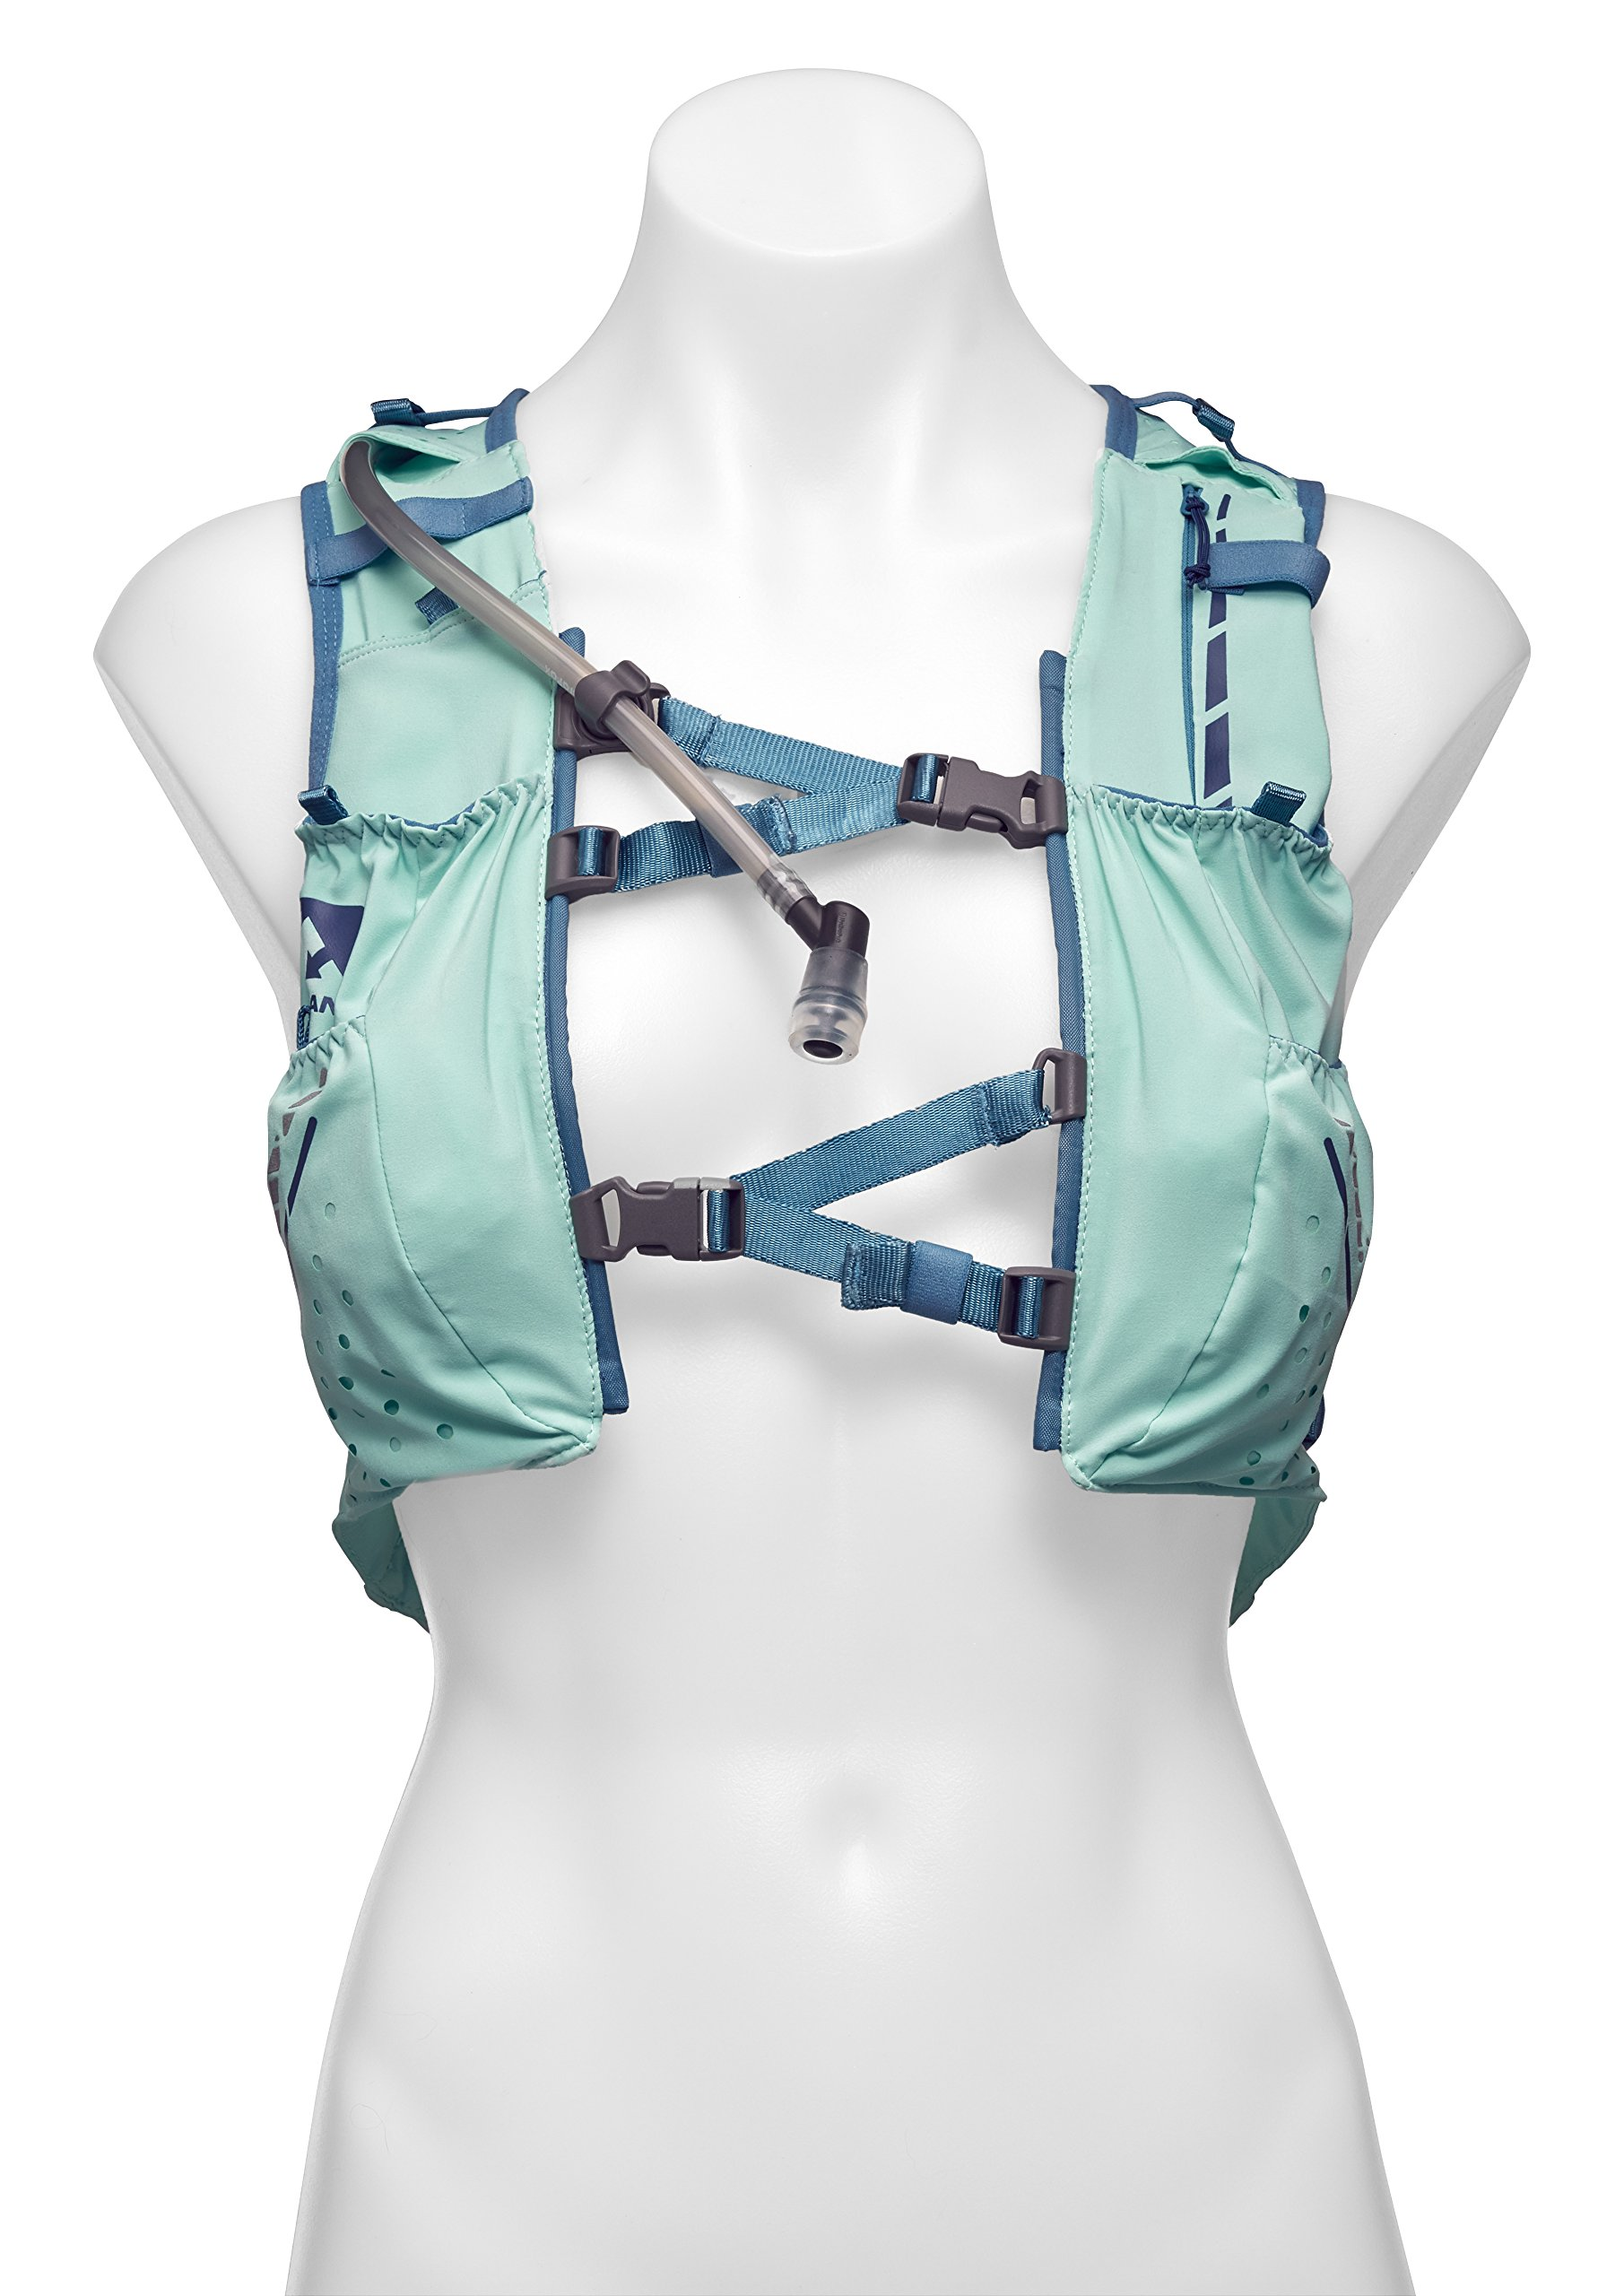 Nathan NS4538 Vaporhowe Hydaration Pack Running Vest with 1.8L Bladder, Blue Radiance, Large